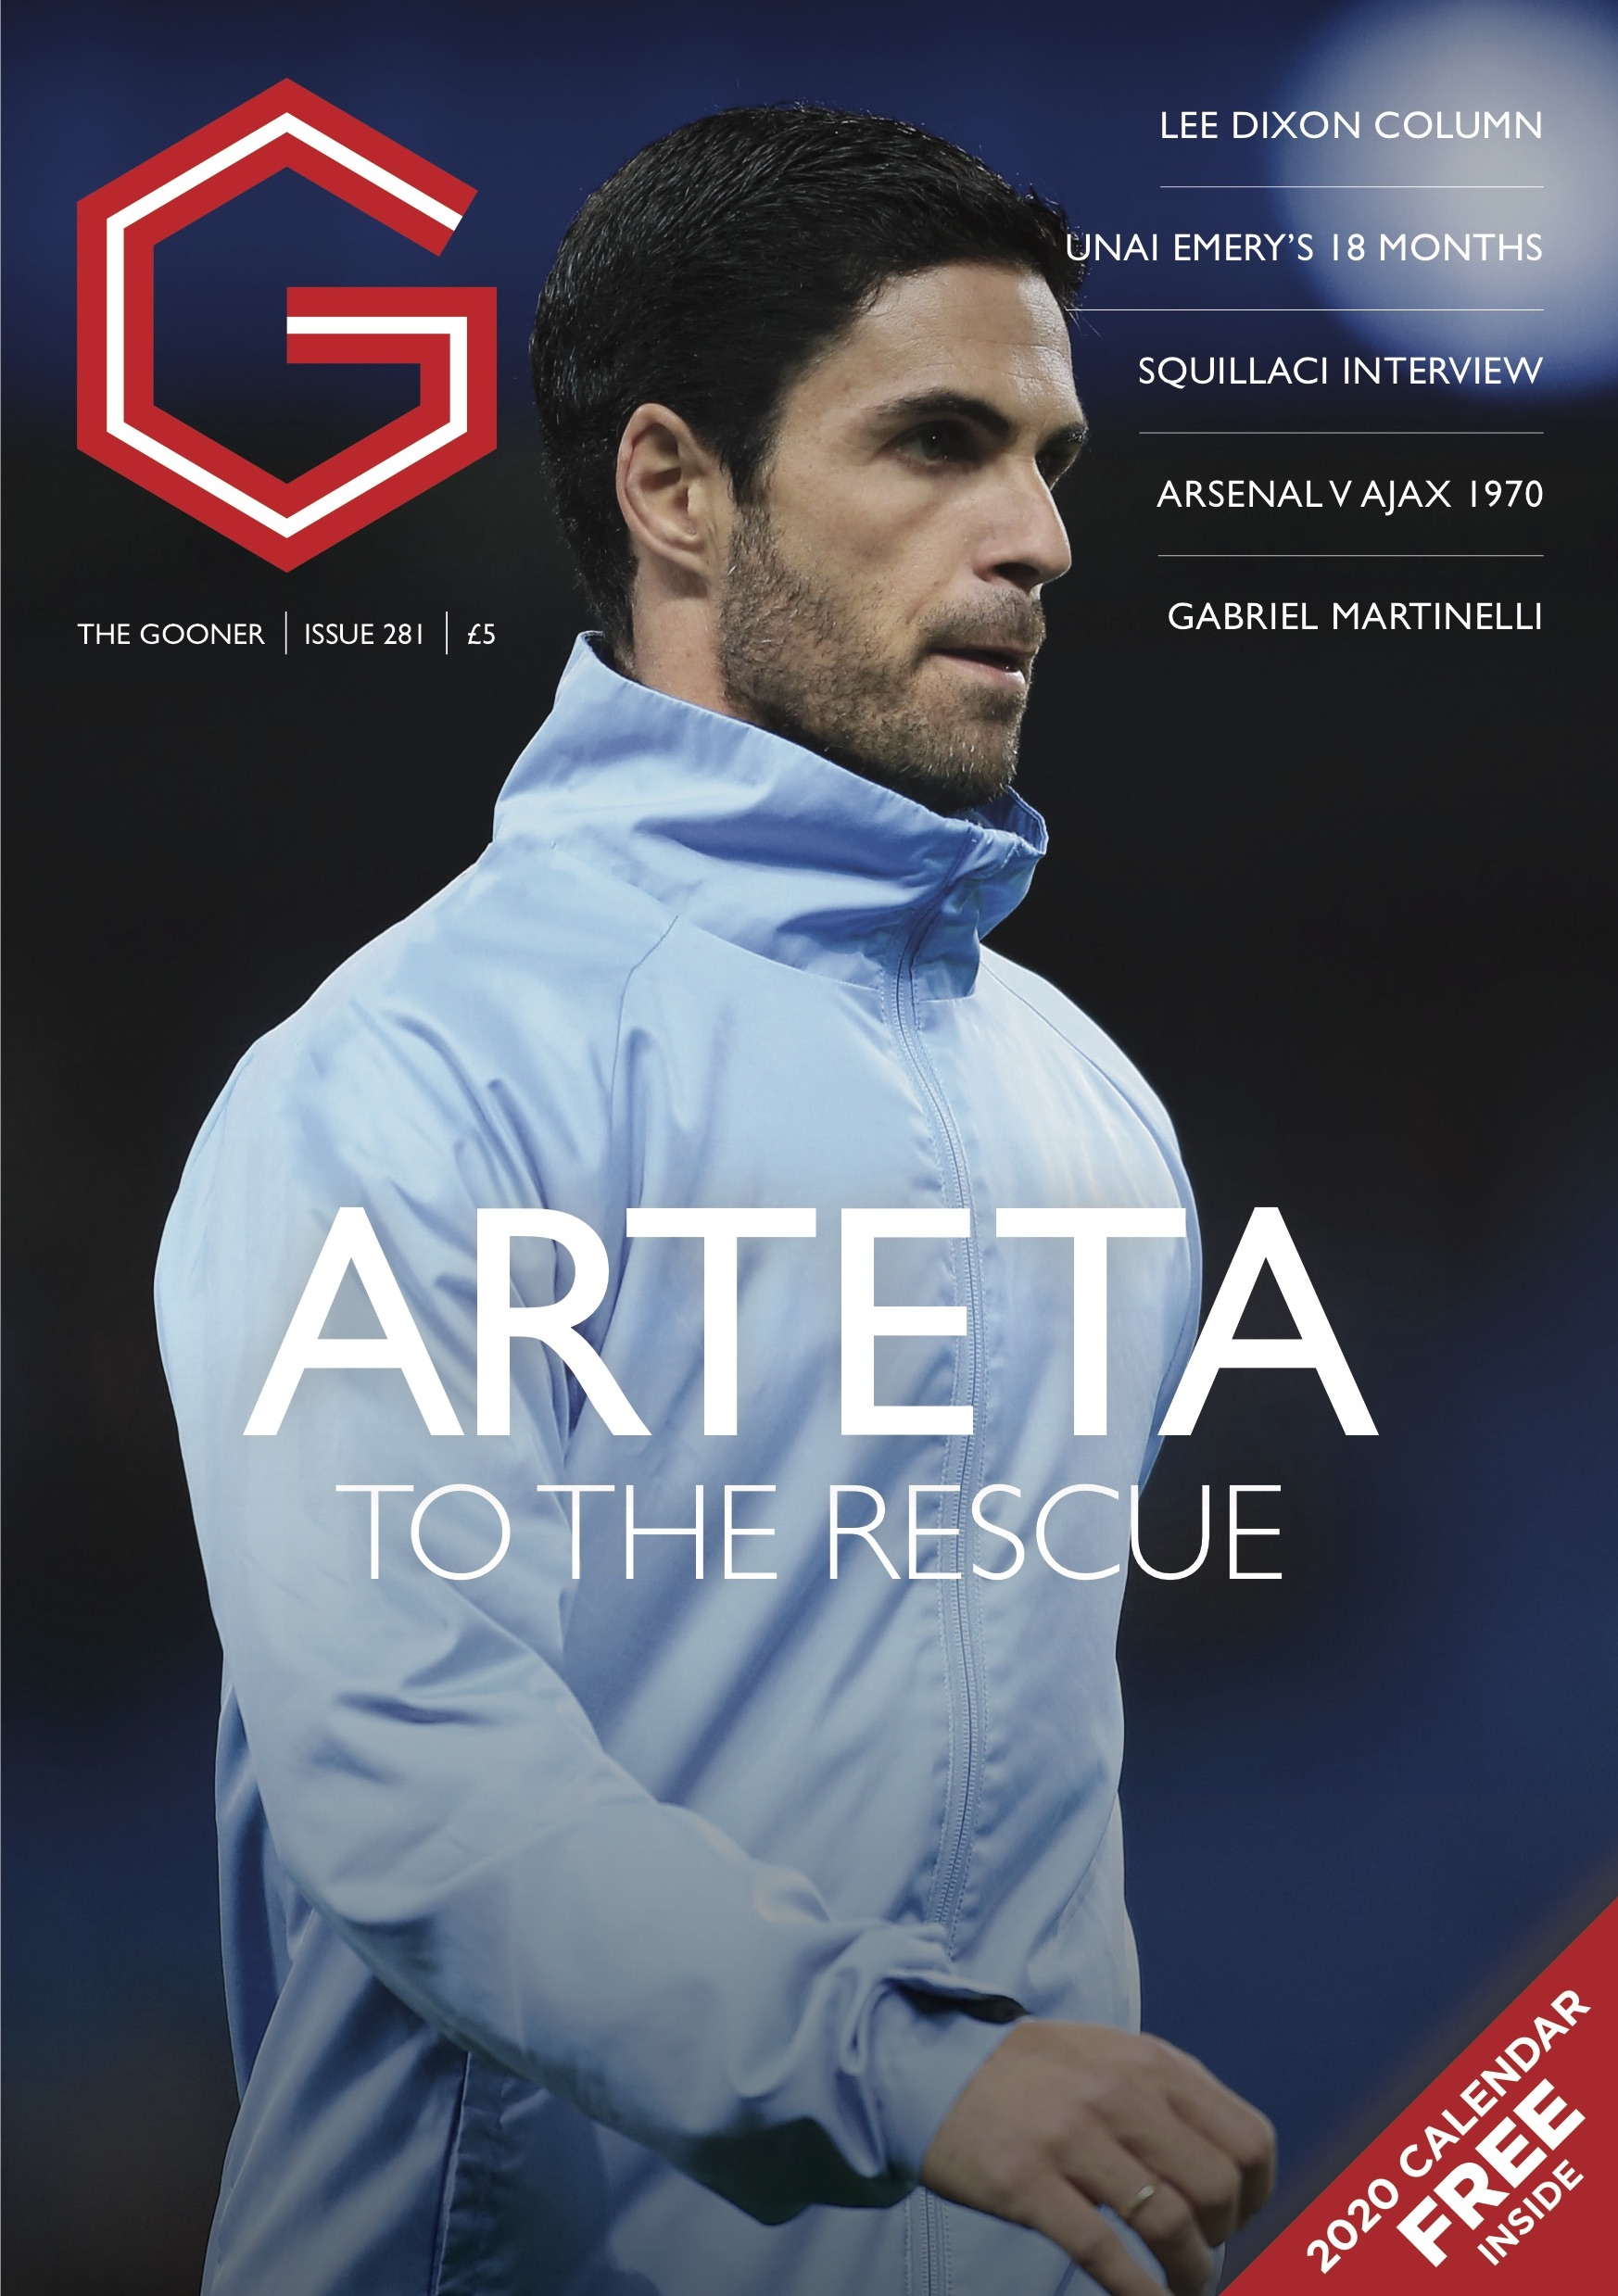 The Gooner Issue 281 (Overseas)